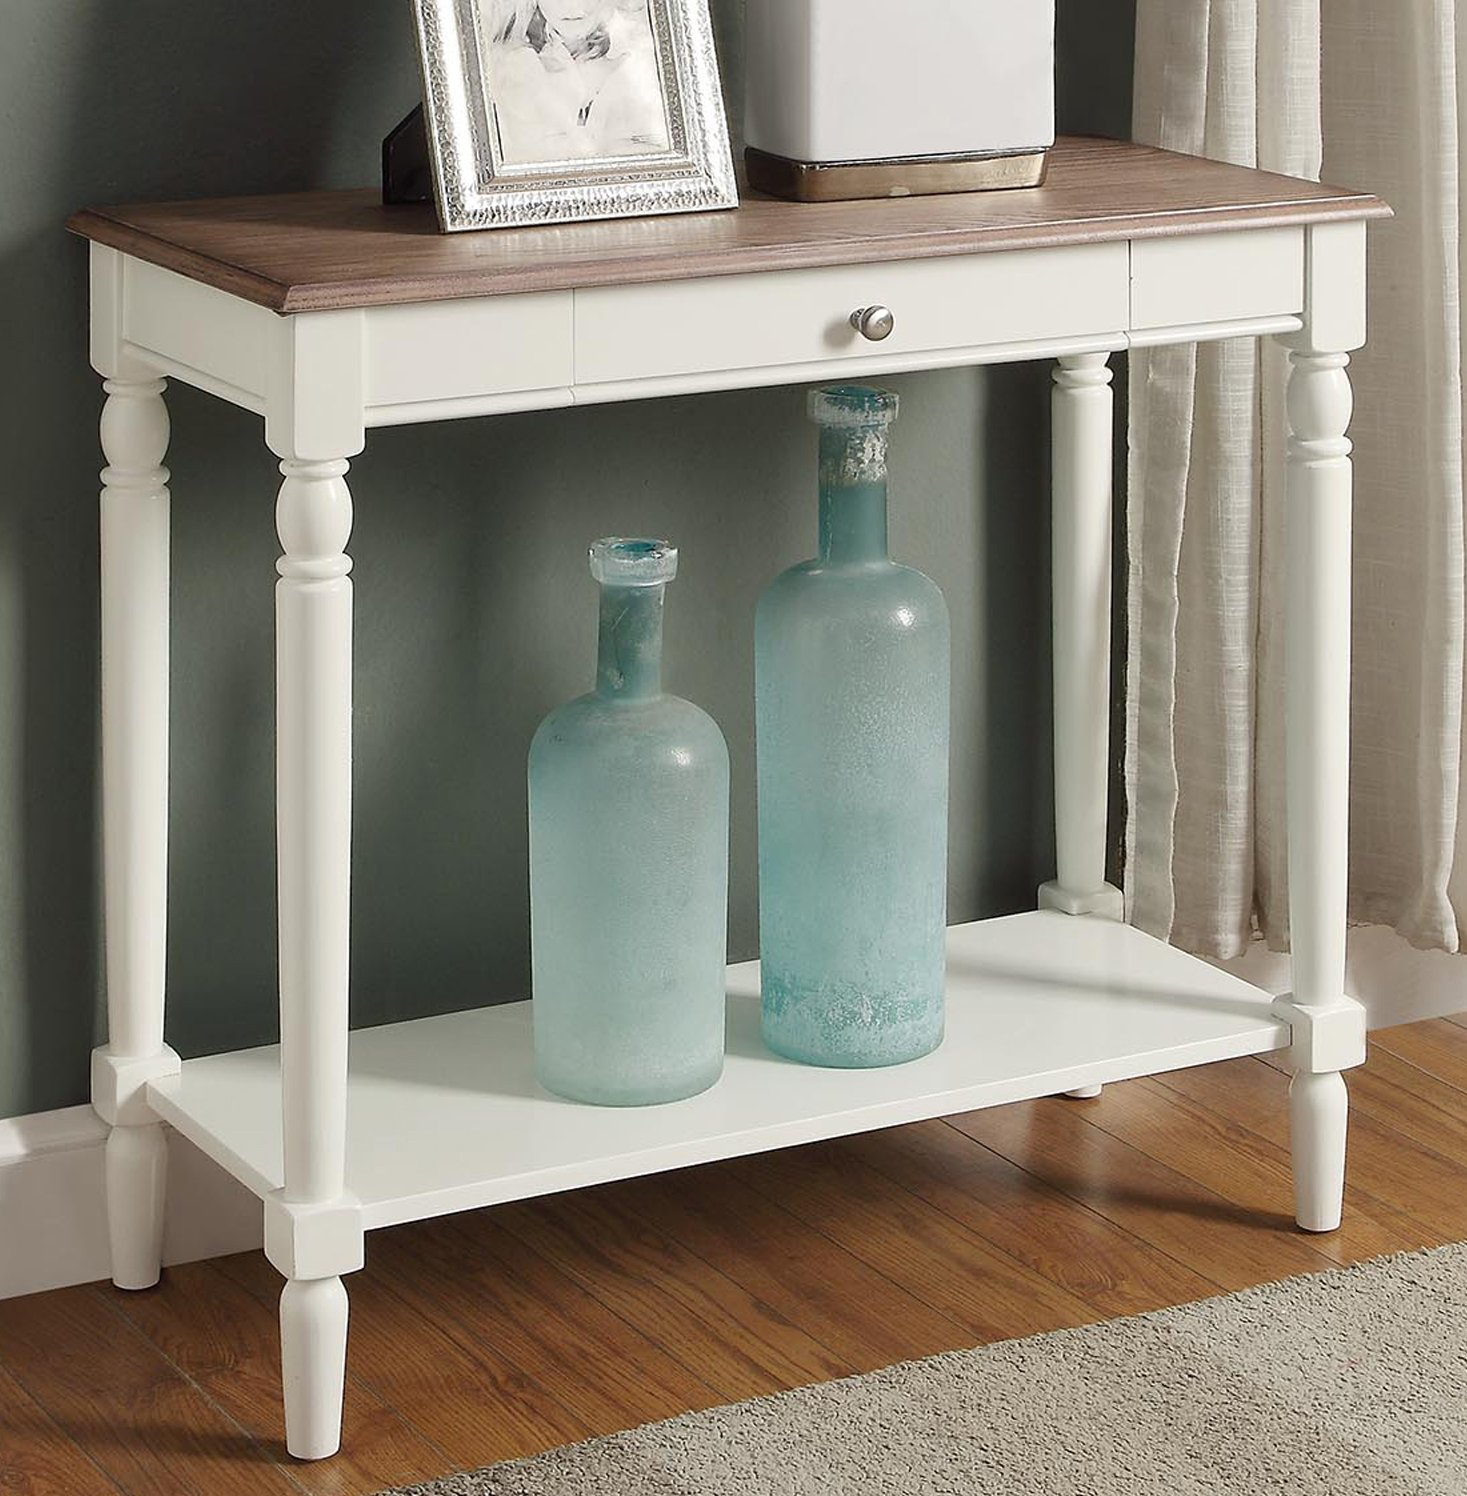 Convenience Concepts 6042188DFTW French Country Hall Table with Drawer and Shelf, Driftwood / White - Features one drawer Features bottom shelf Available in multiple finishes - living-room-furniture, living-room, console-tables - 81irjl1IfVL -